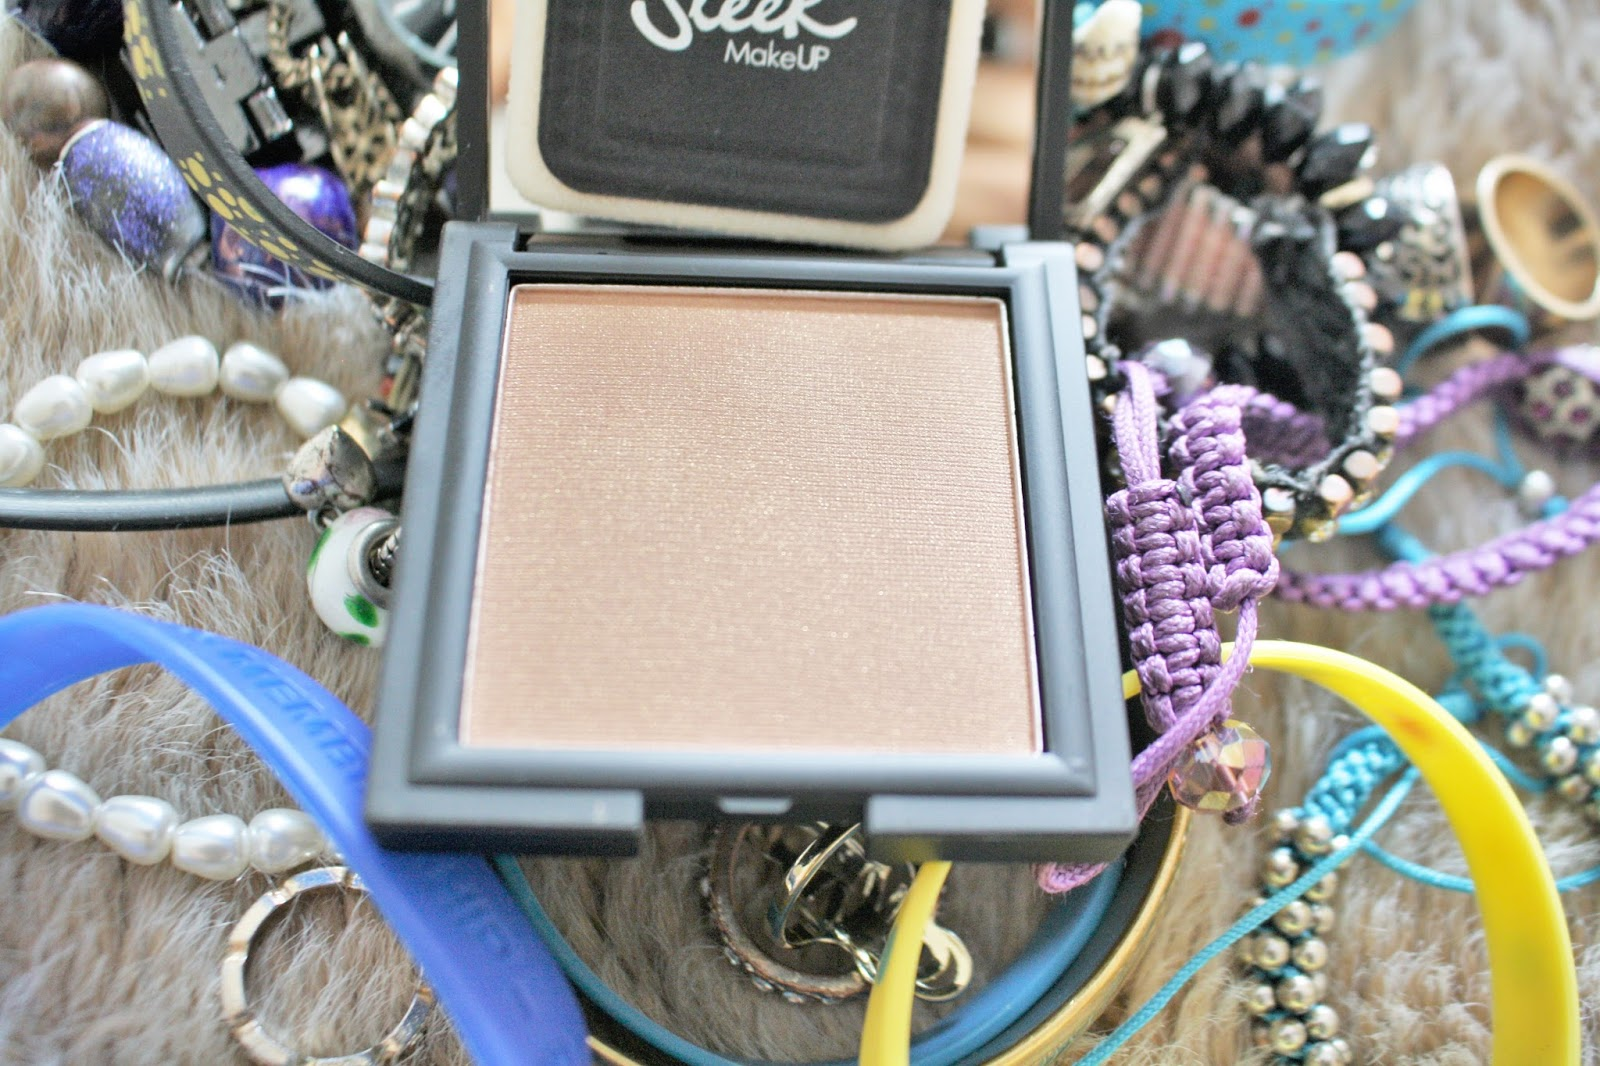 sleek make up pressed powder anika may everyday make up routine photography blog review